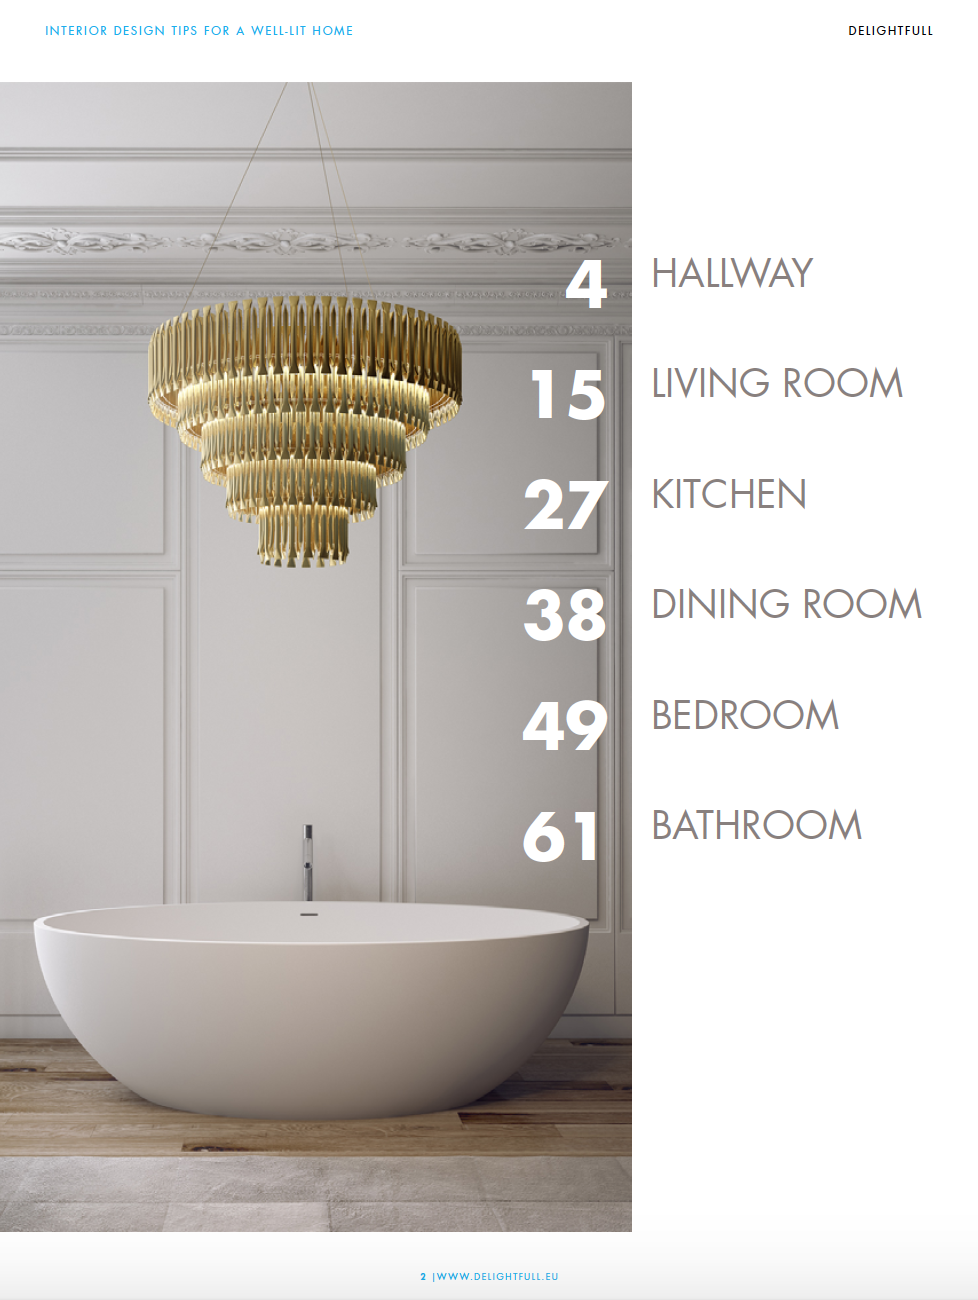 NEW EBOOK- INTERIOR DESIGN TIPS FOR A WELL-LIT HOME!